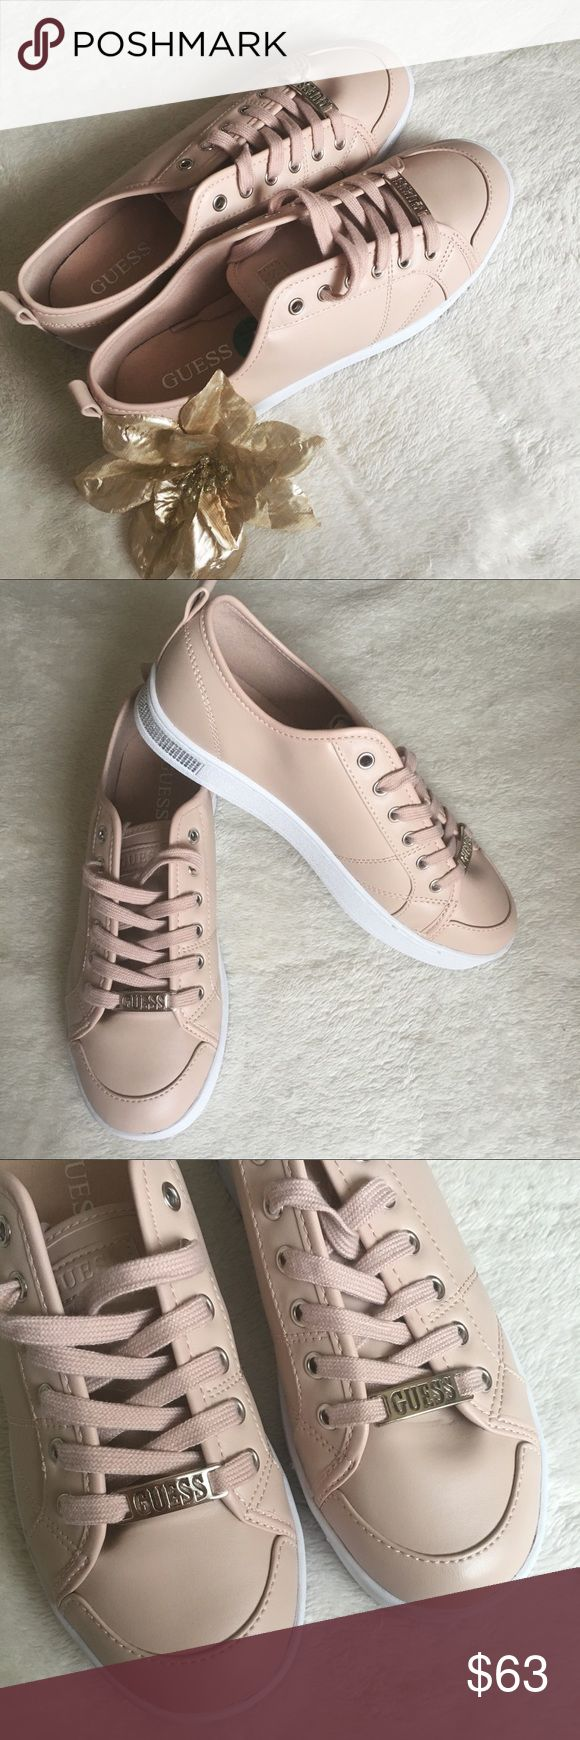 NEW Guess Sneakers Nude Pink Size 7.5 NWOT BRAND NEW Gorgeous Guess Nude Pink sneakers. Size 7.5  White shoe sole with studs in the back Guess Shoes Sneakers